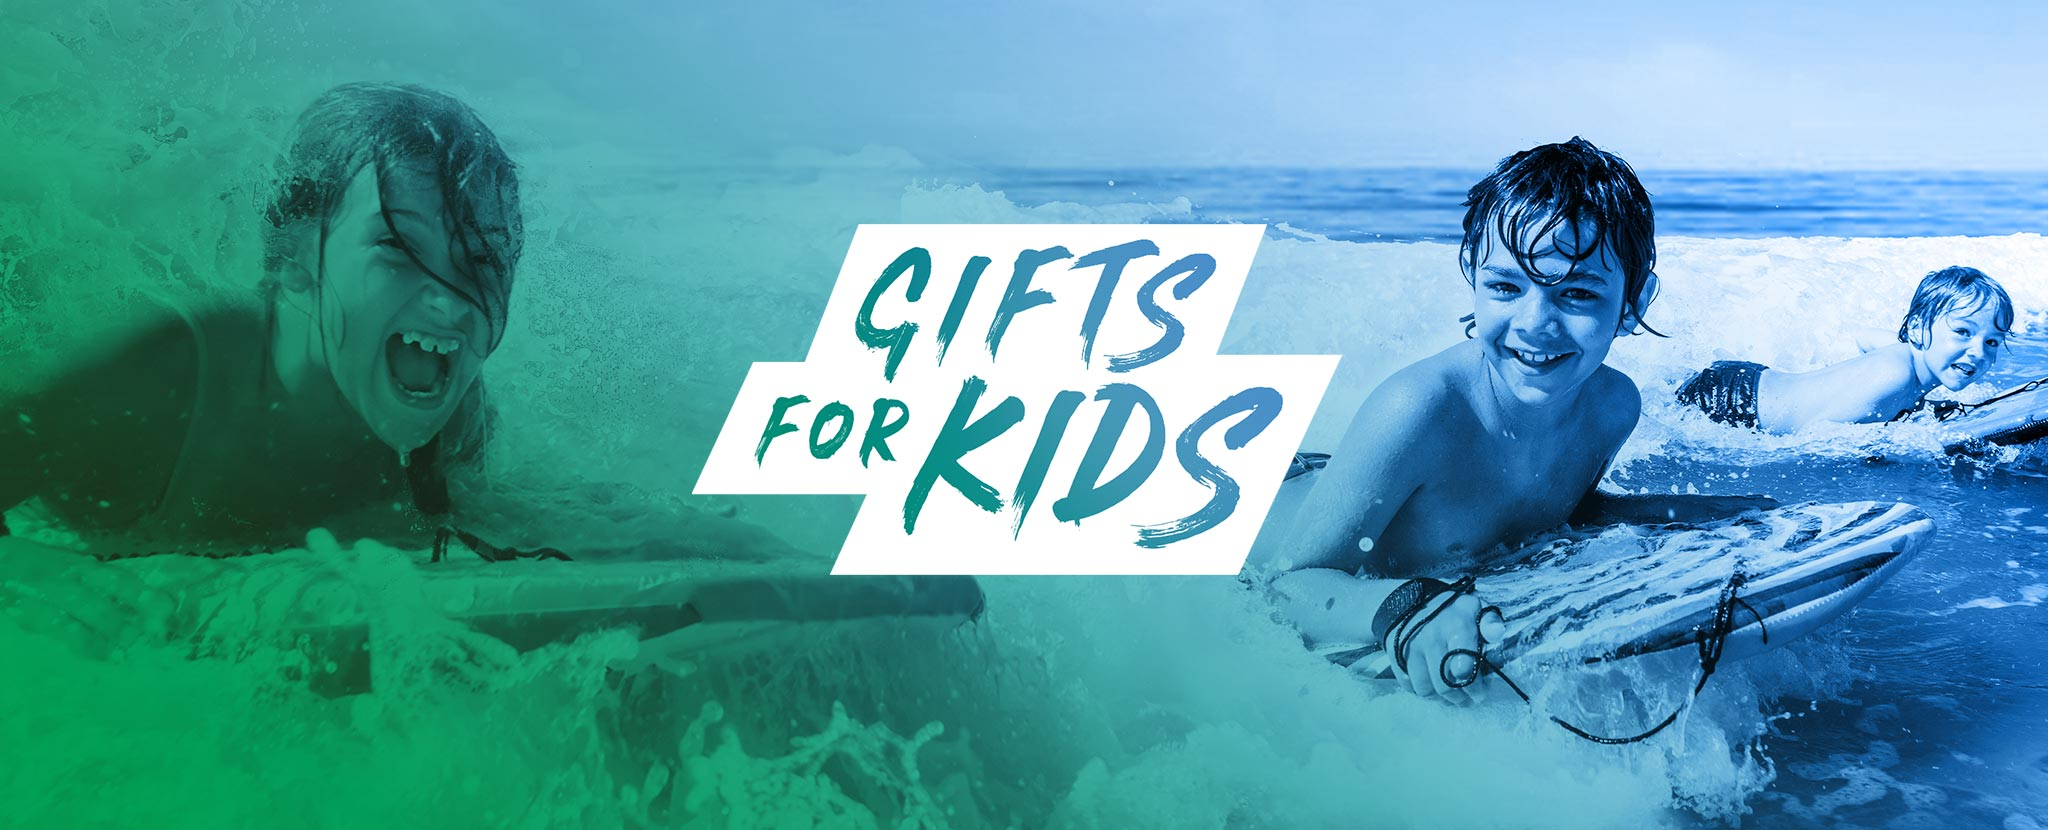 Exit Surf Gift Ideas for Kids